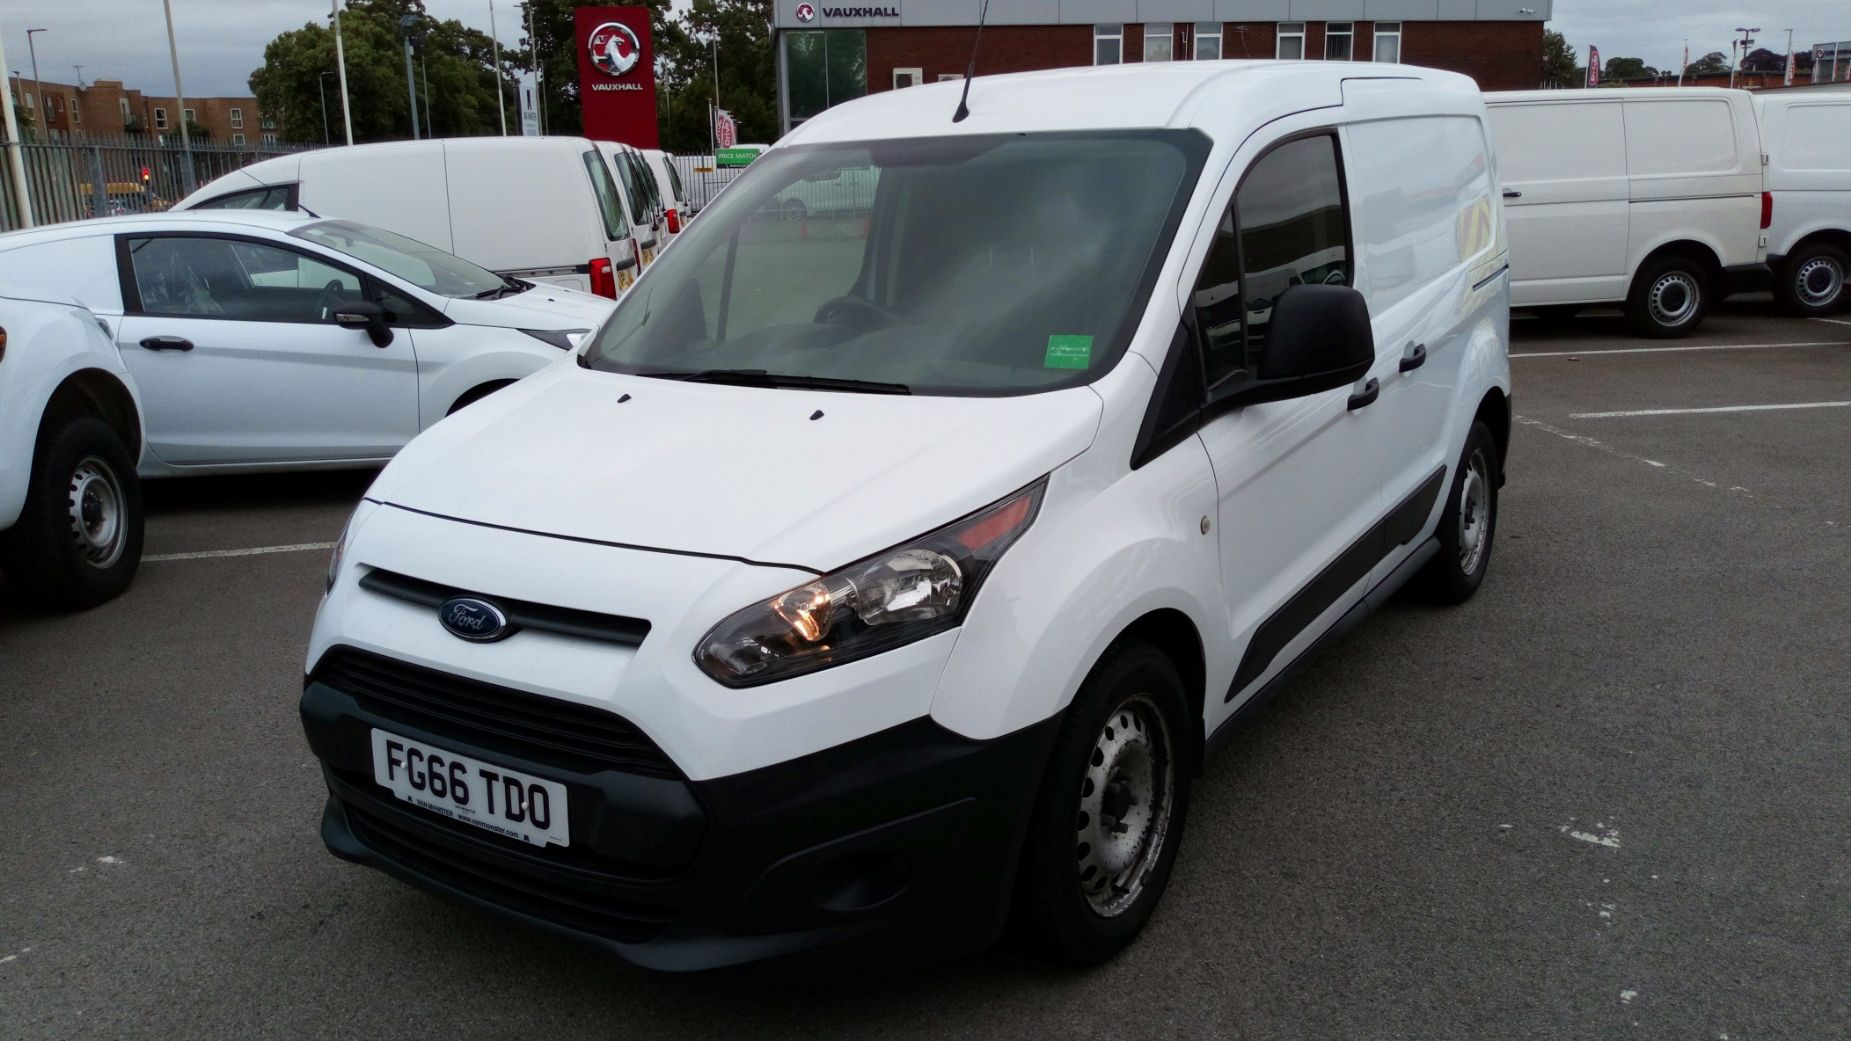 2016 Ford Transit Connect 1.5 Tdci 75Ps Van (FG66TDO) Image 3